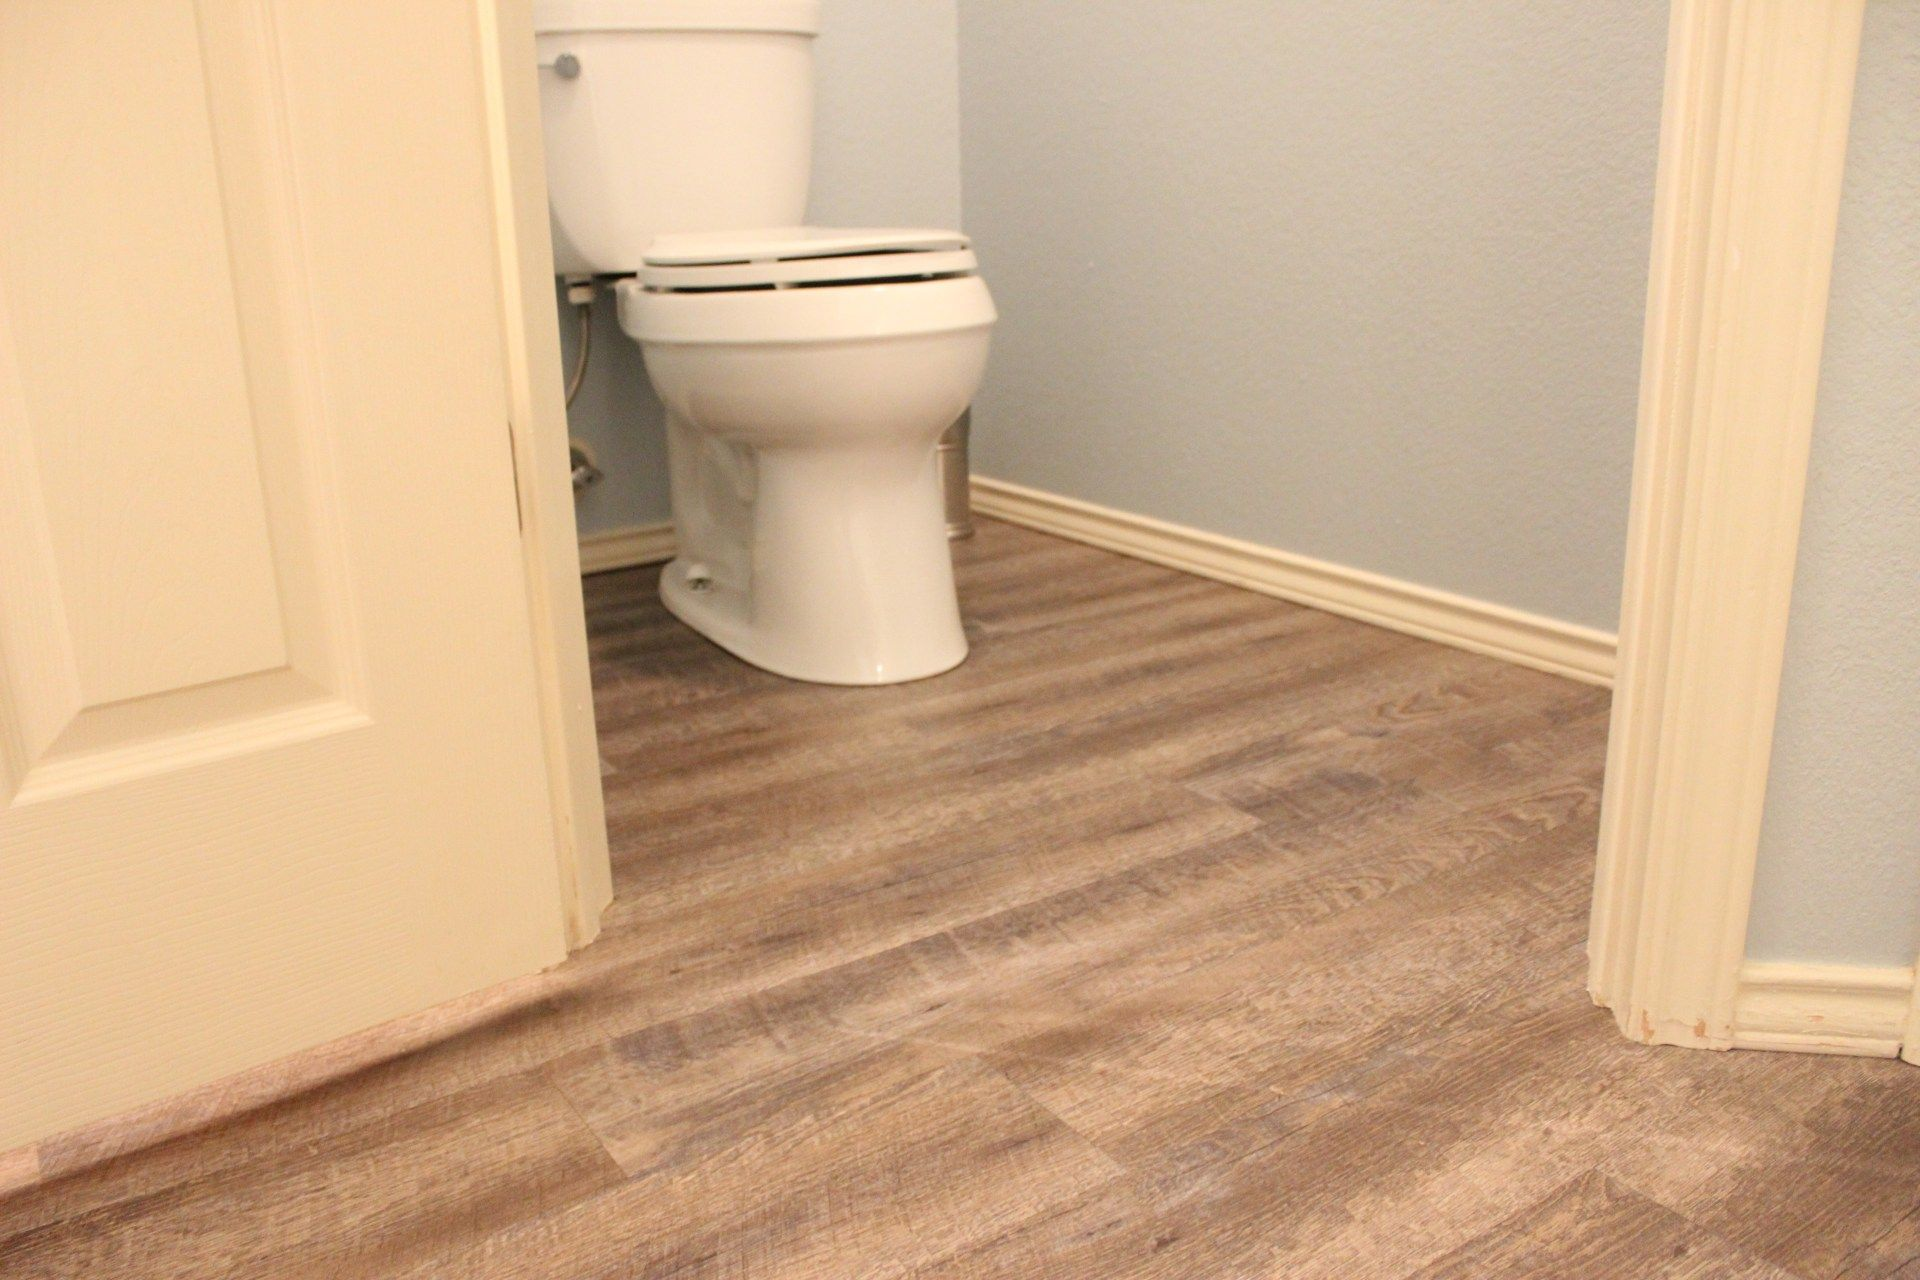 L And Stick Vinyl Flooring Is A Easy Way To Bring New Life An Outdated Space Follow These Tips For Installation Beautiful Results